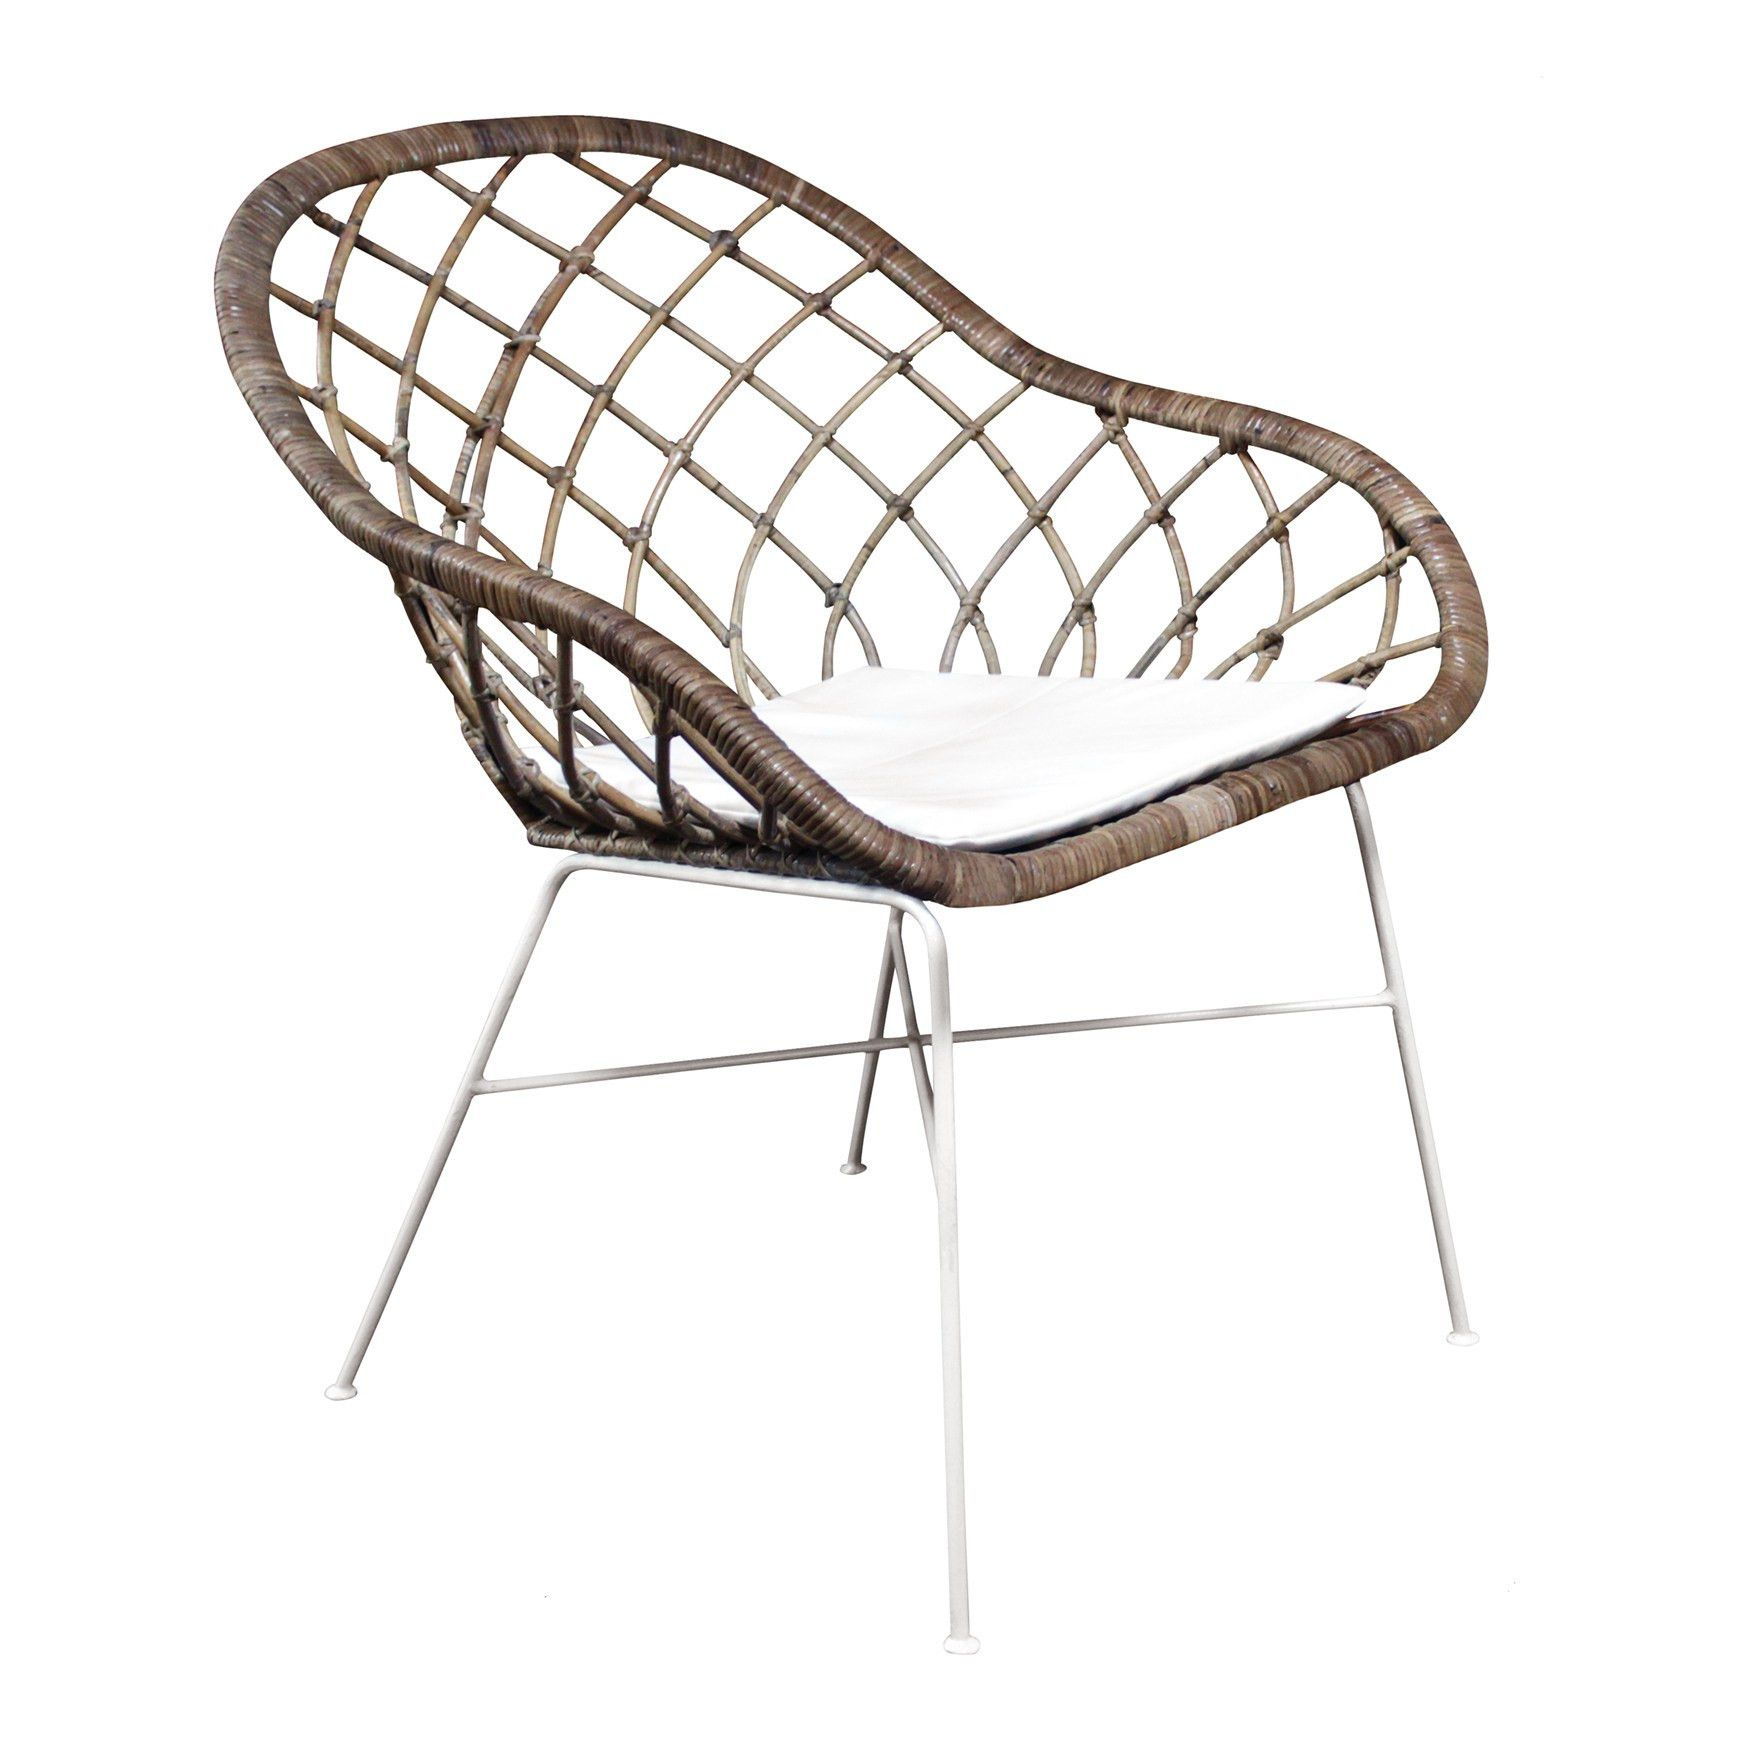 A beautiful feature rattan arm chair perfect for living